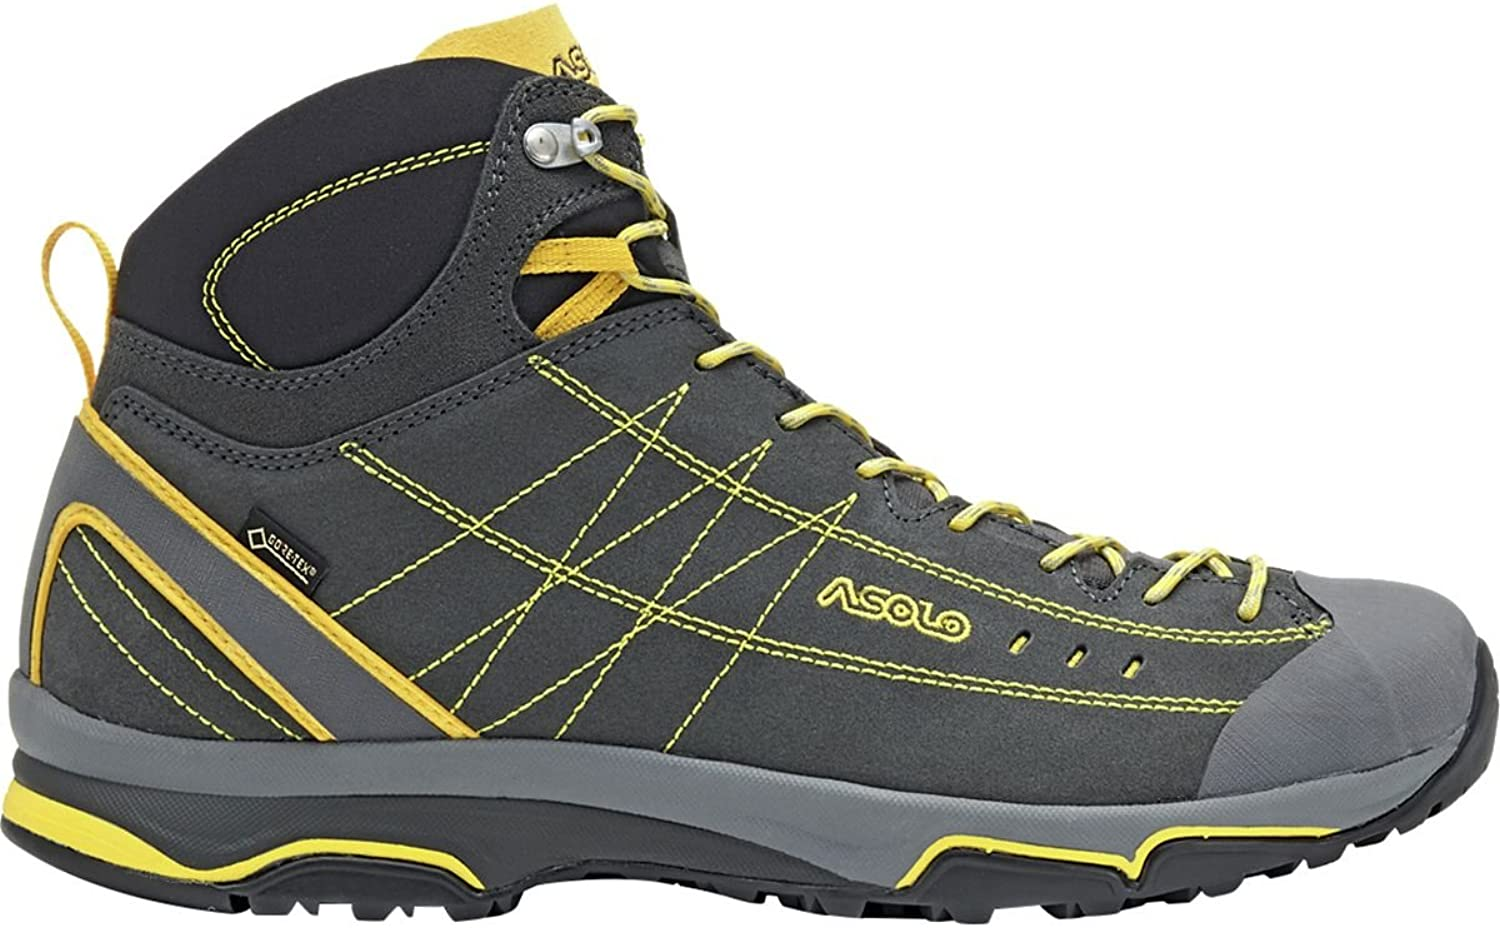 Asolo Men's Nucleon Mid Gv Hiking Boot Grey